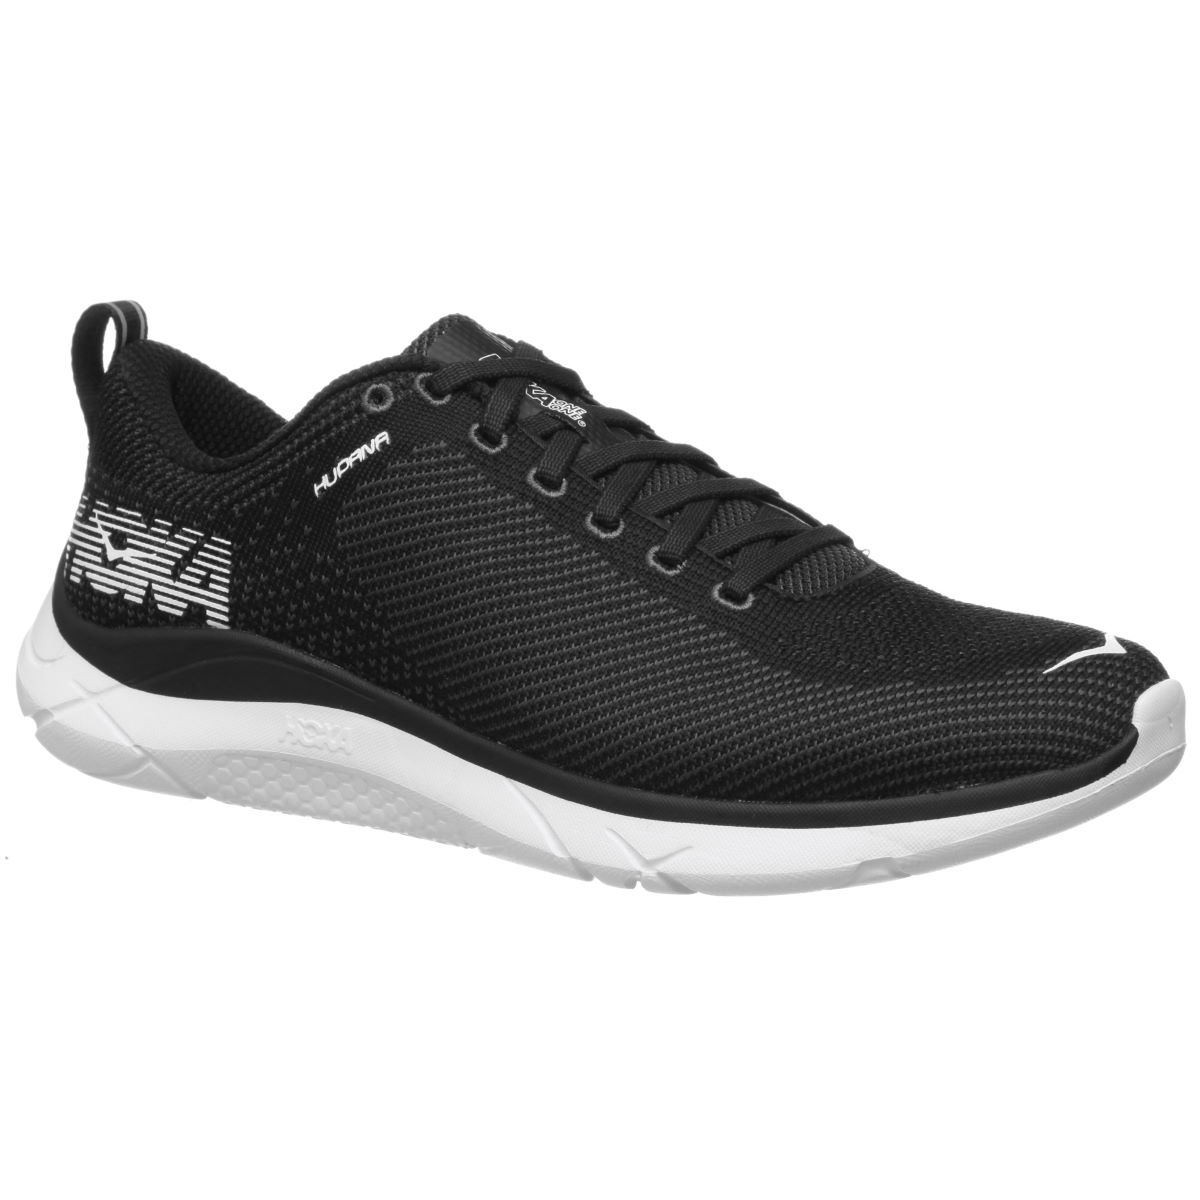 Chaussures Femme Hoka One One Hupana - UK 8.5 Black/Dark Shadow